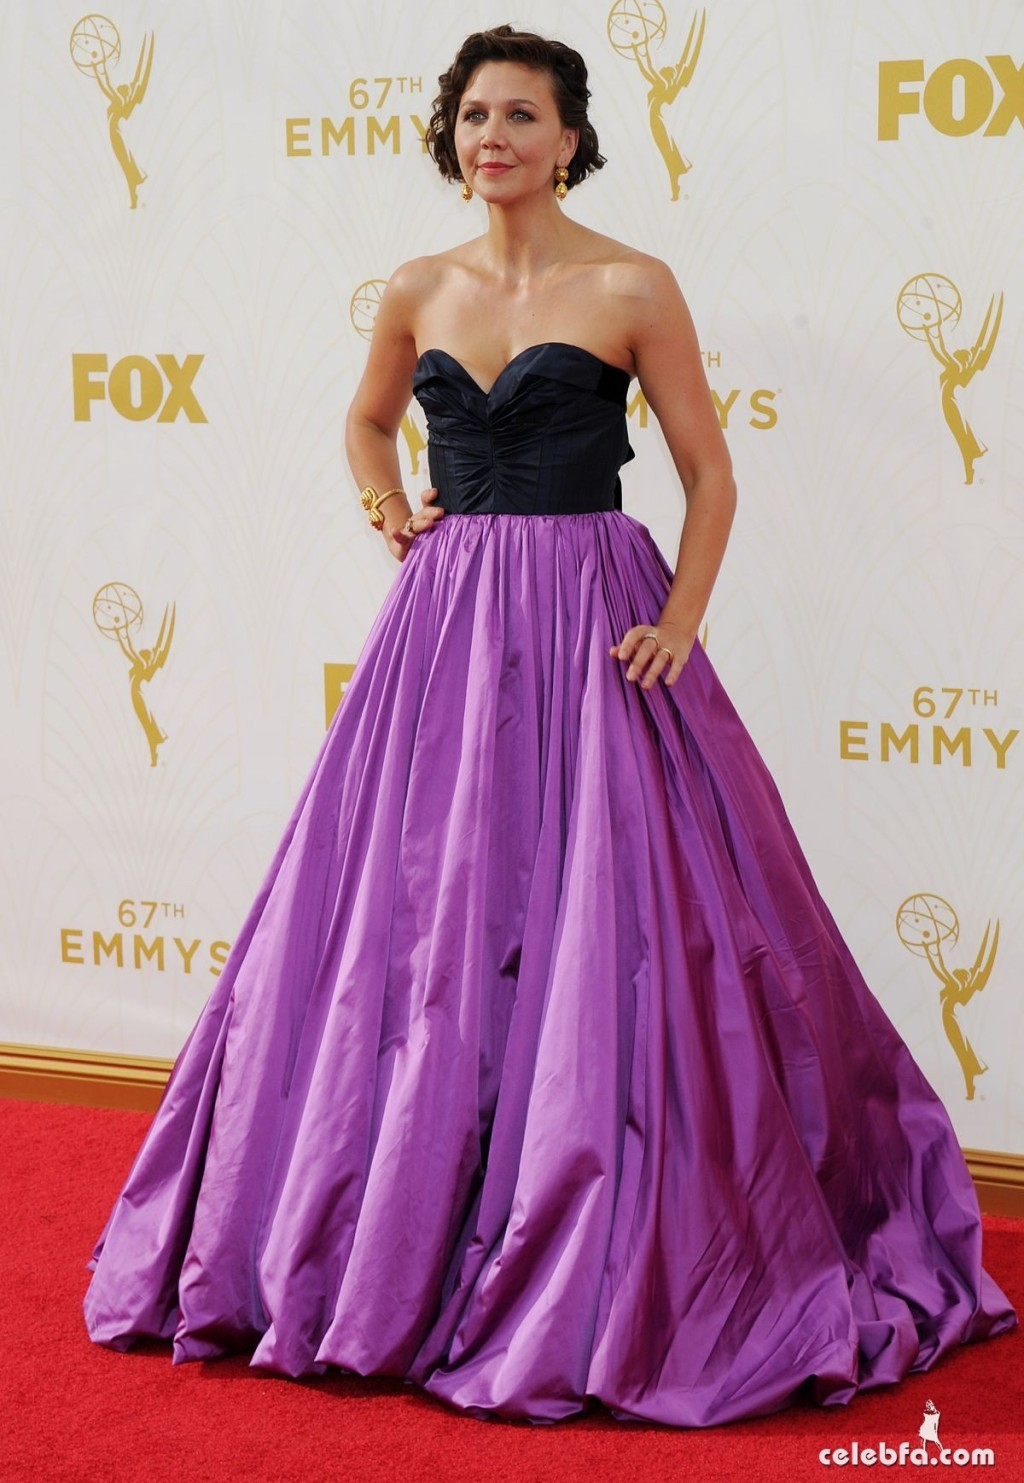 maggie-gyllenhaal-at-2015-emmy-awards (2)